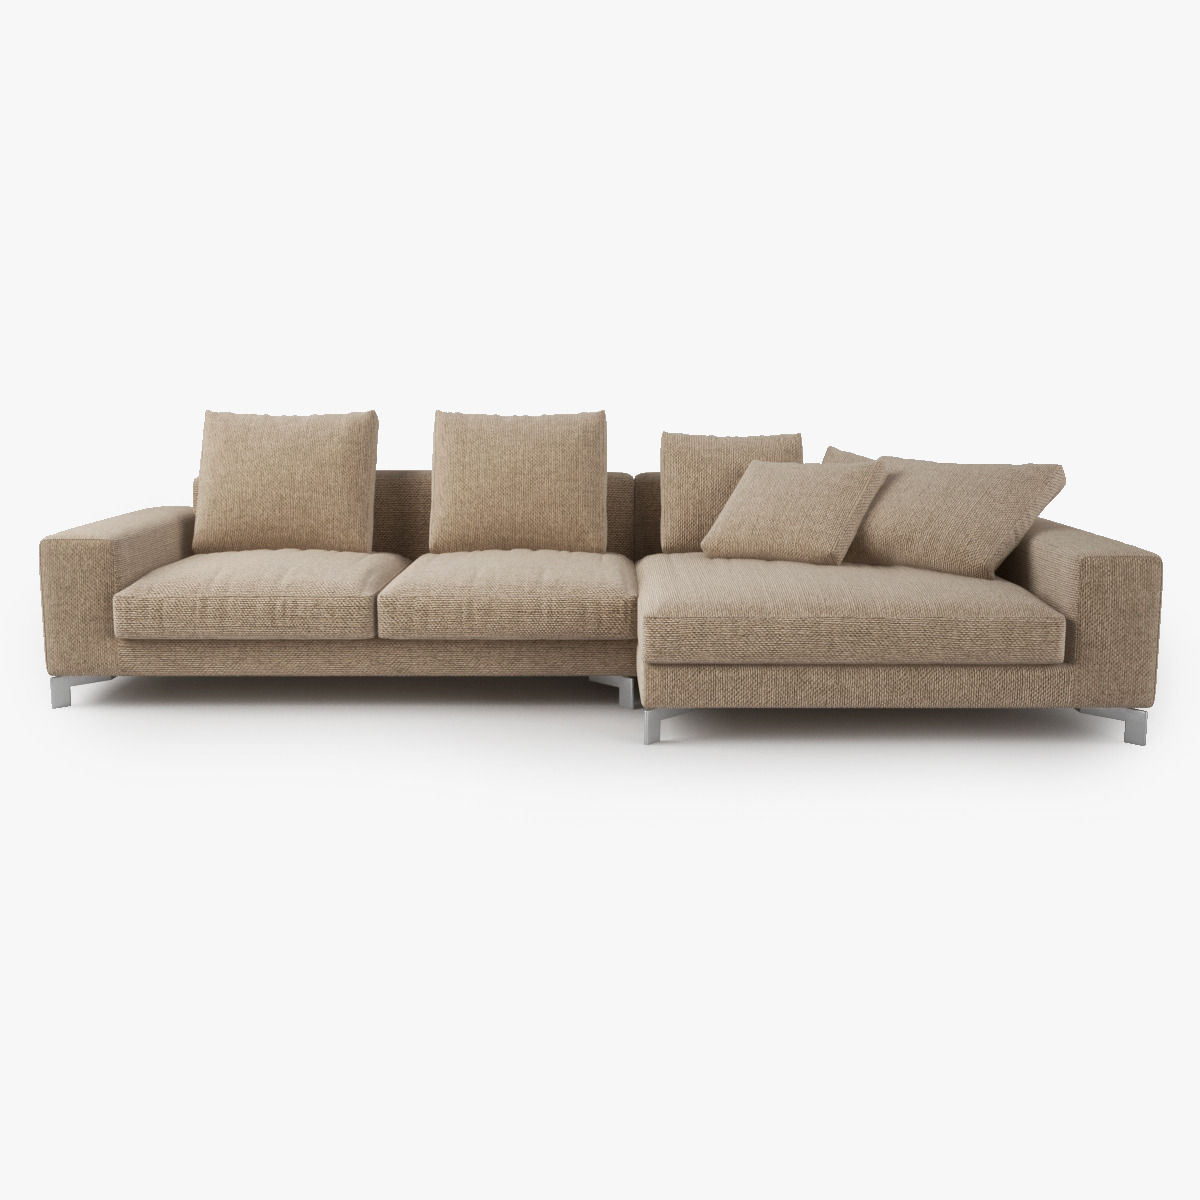 Busnelli Take It Easy Sofa Corner Model Max Obj Mtl Fbx 3